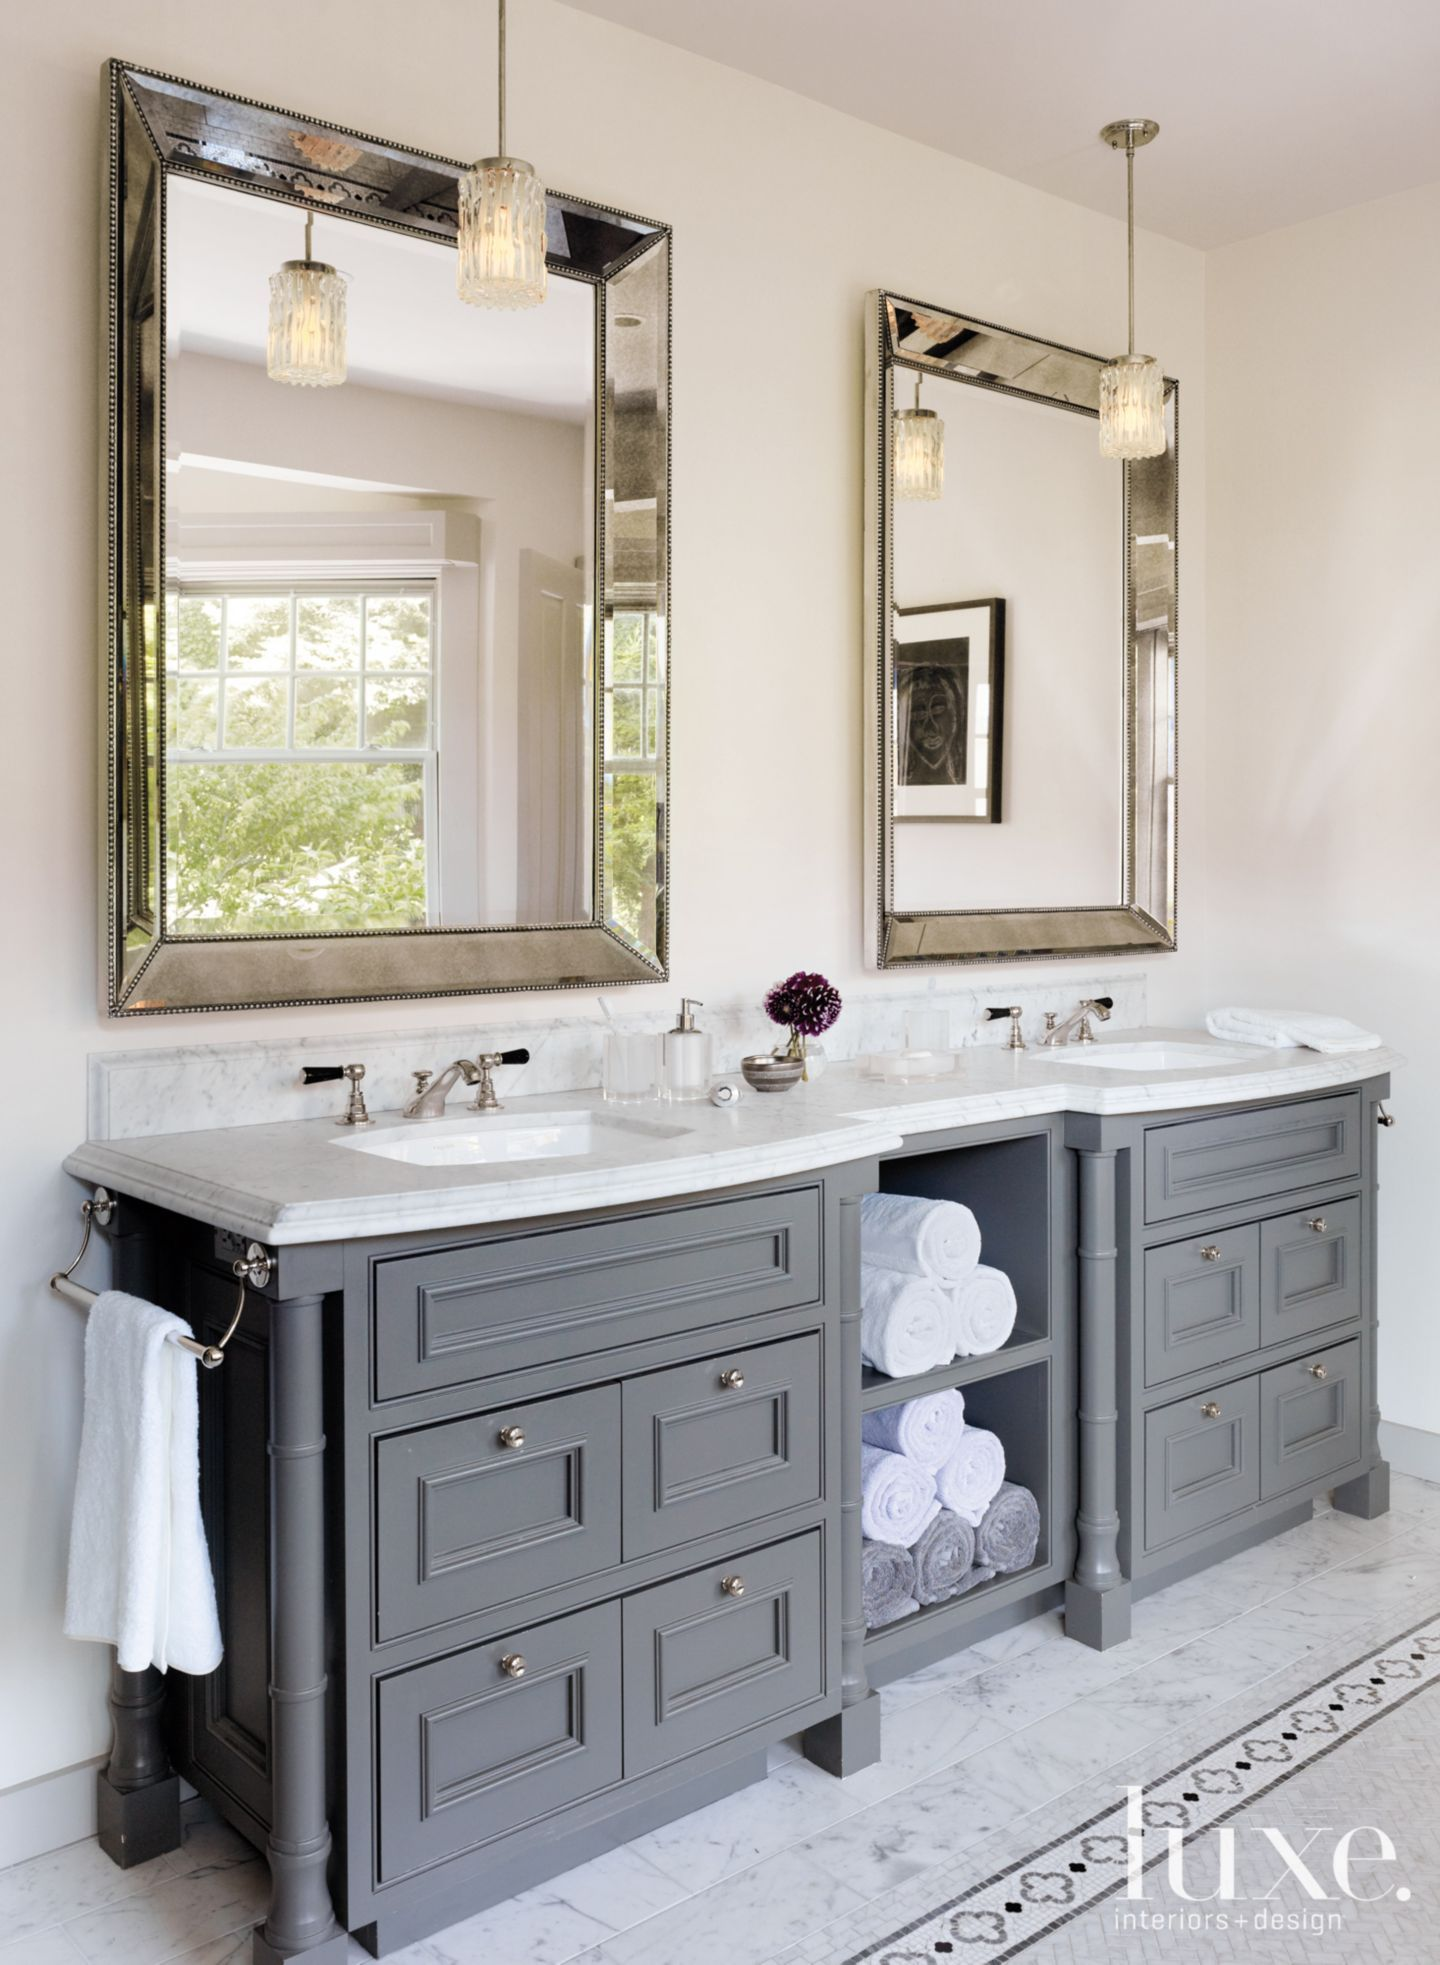 Bathroom Vanity Decor Cheap Bathroom Vanities Ideas New House Pinterest